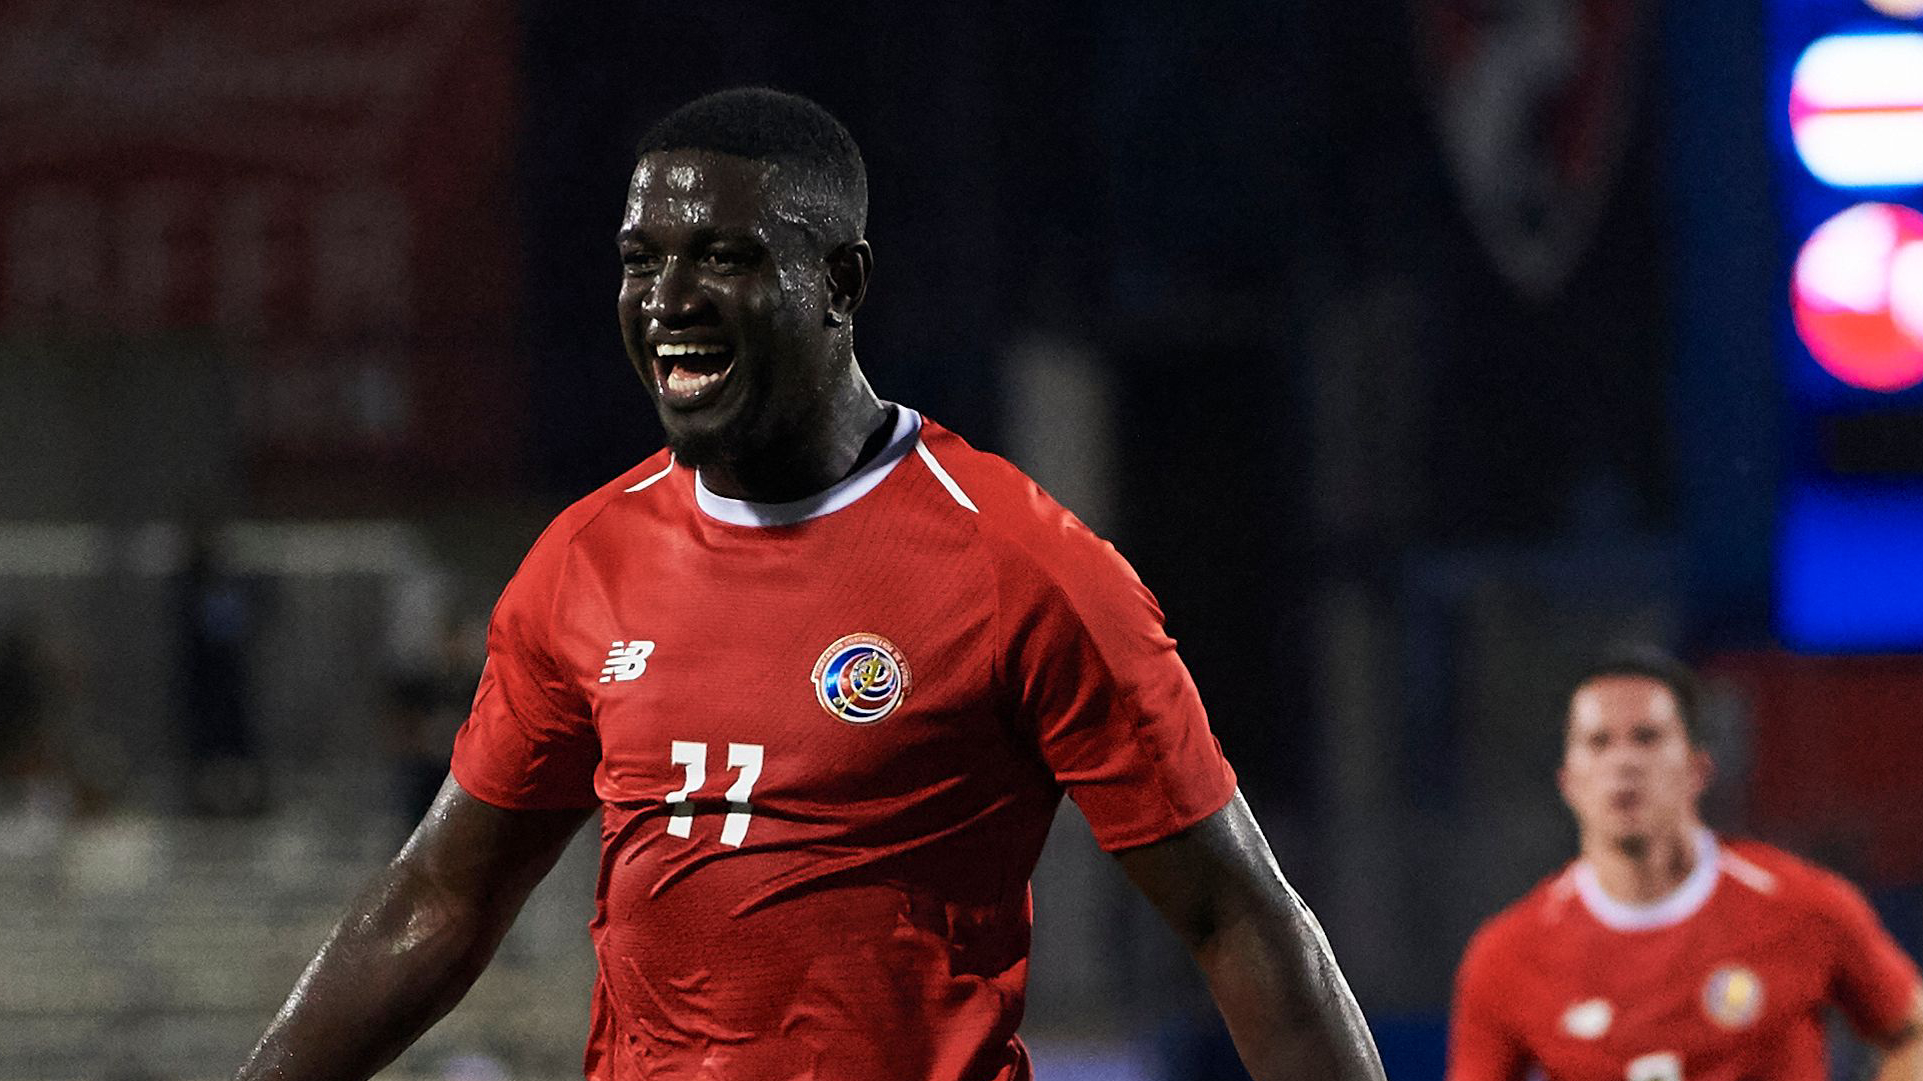 Mayron George Costa Rica Gold Cup 06202019